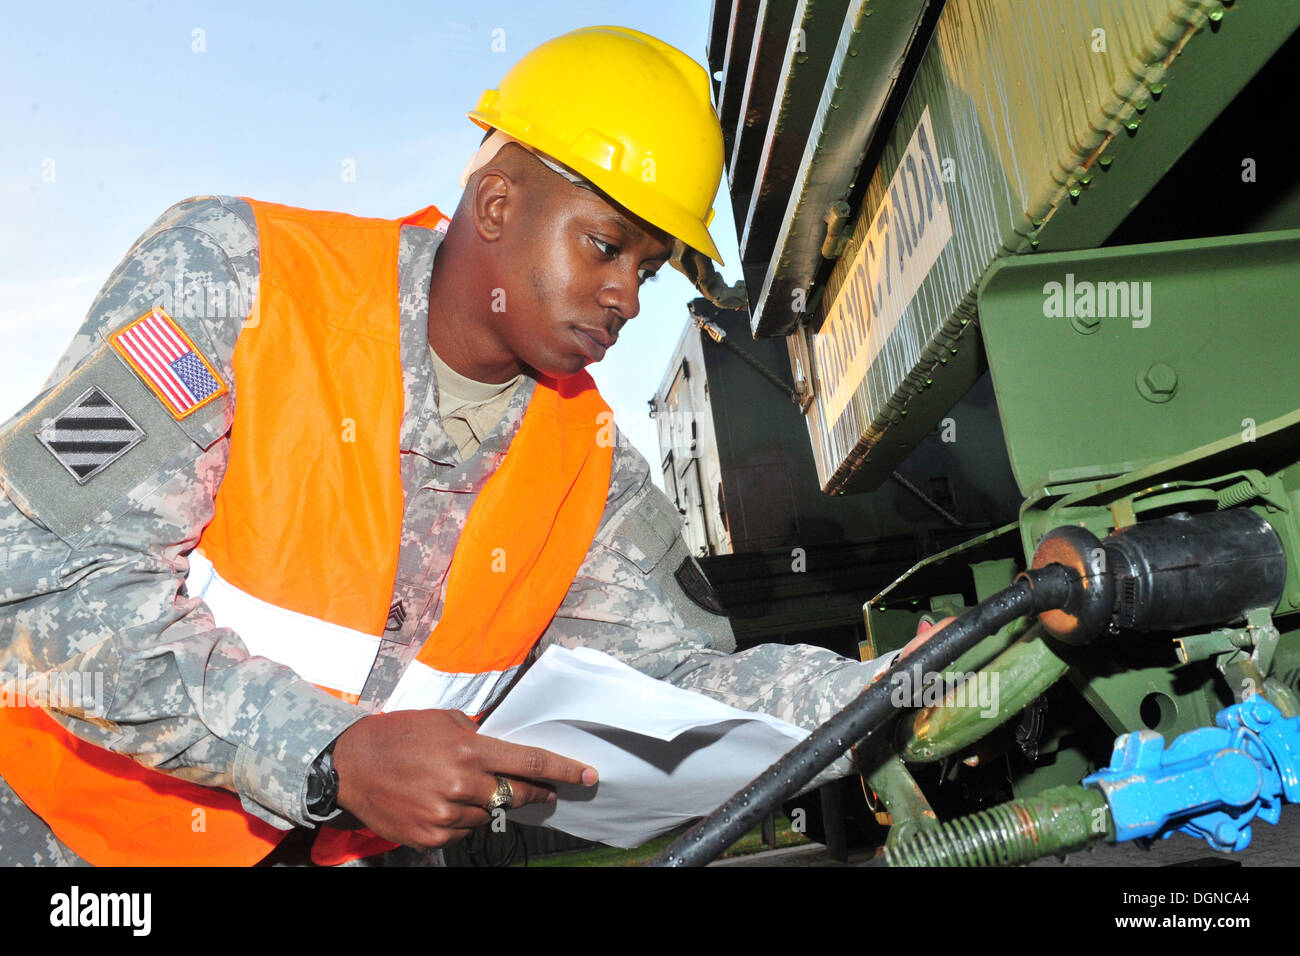 Staff Sgt. Tyler P. Jackson, the transportation movement and installation staging area supervisor with the 21st Theater Sustainment Command and a native of Queens, N.Y., inspects a vehicle belonging to the 5th Battalion, 7th Air Defense Artillery at Rhine - Stock Image